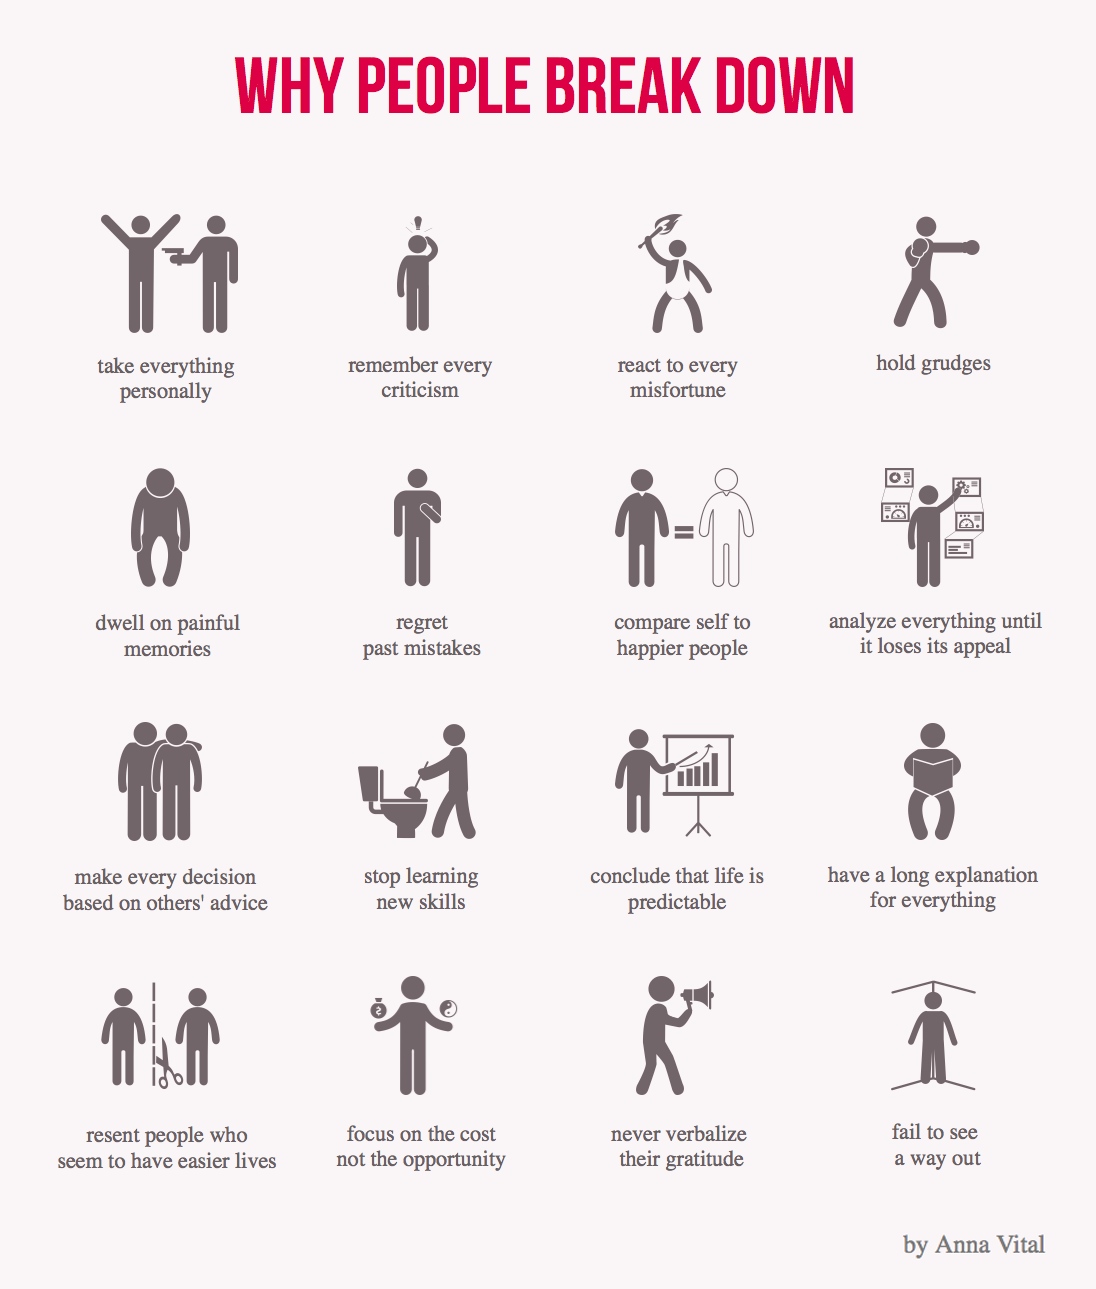 Anna Vital on Twitter: Why people break down? Here are my